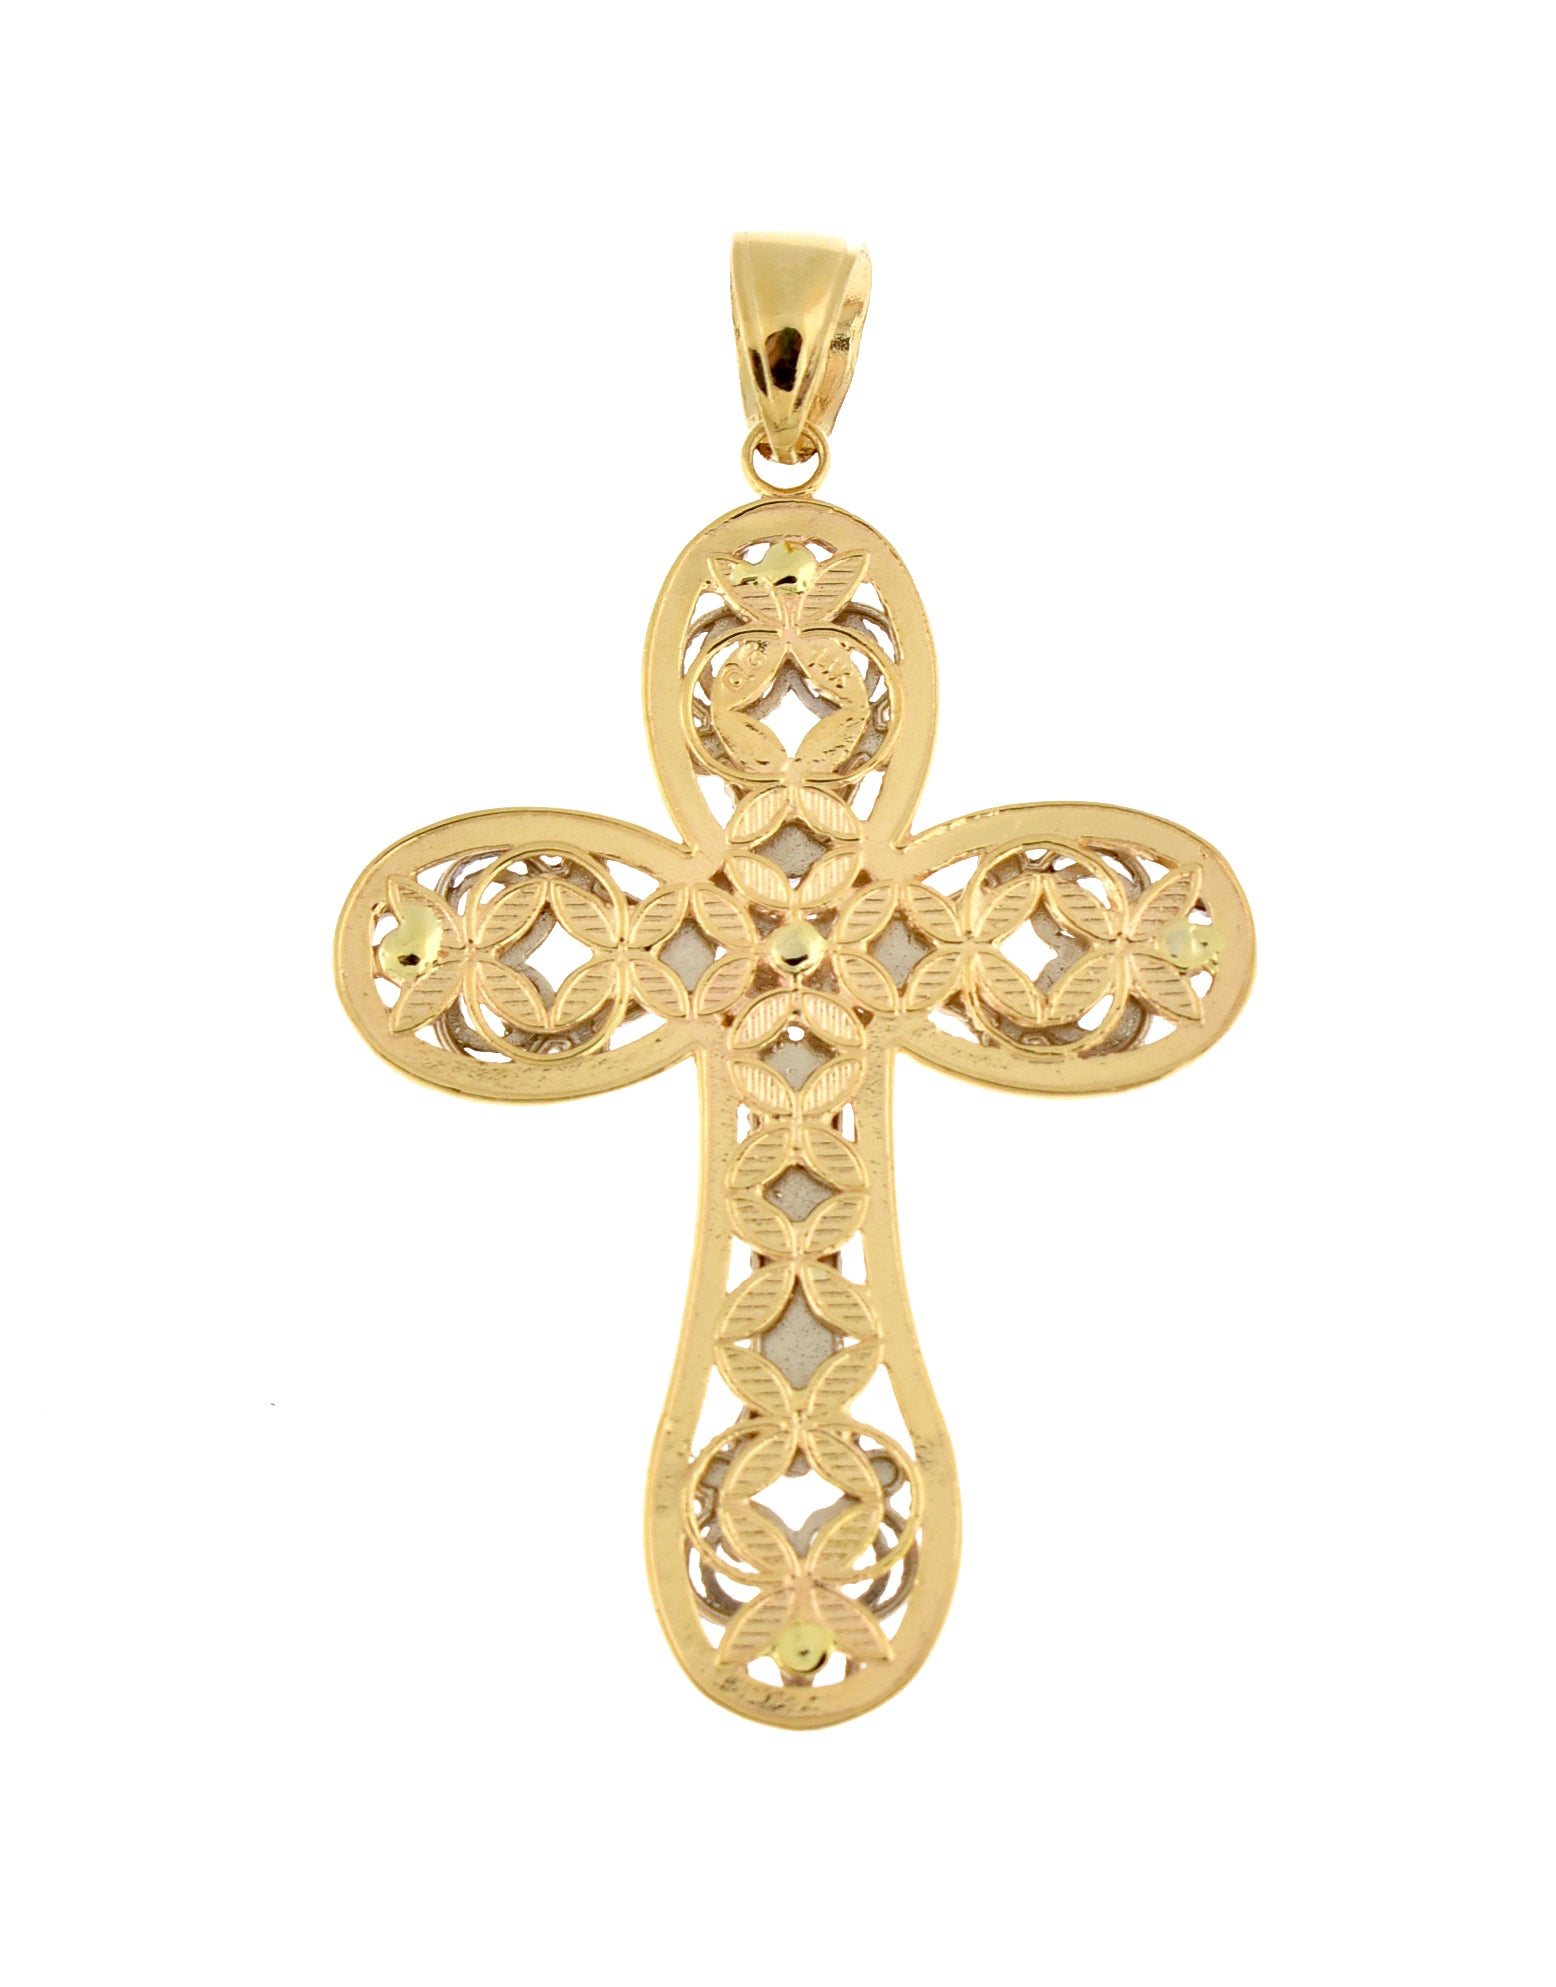 14k Gold Two Tone Large Fancy Latin Cross Pendant Charm